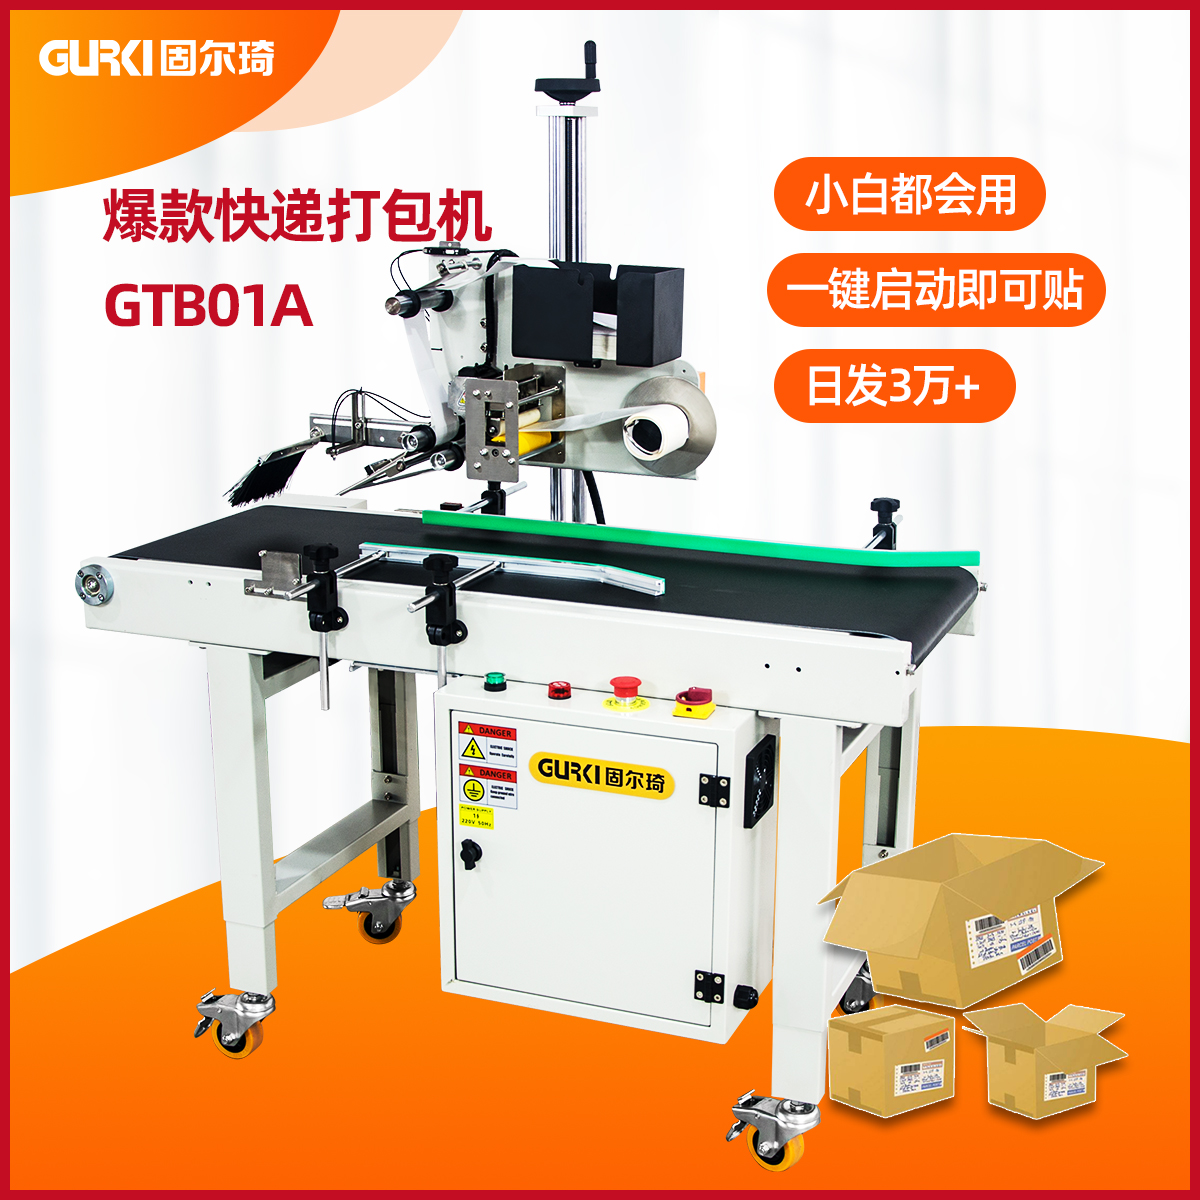 Jorda express labeling machine fully automatic labeling mechanical and electrical merchants explosion special bag envelope file label machine post 1-12  box carton express automatic single labeling machine can be customized